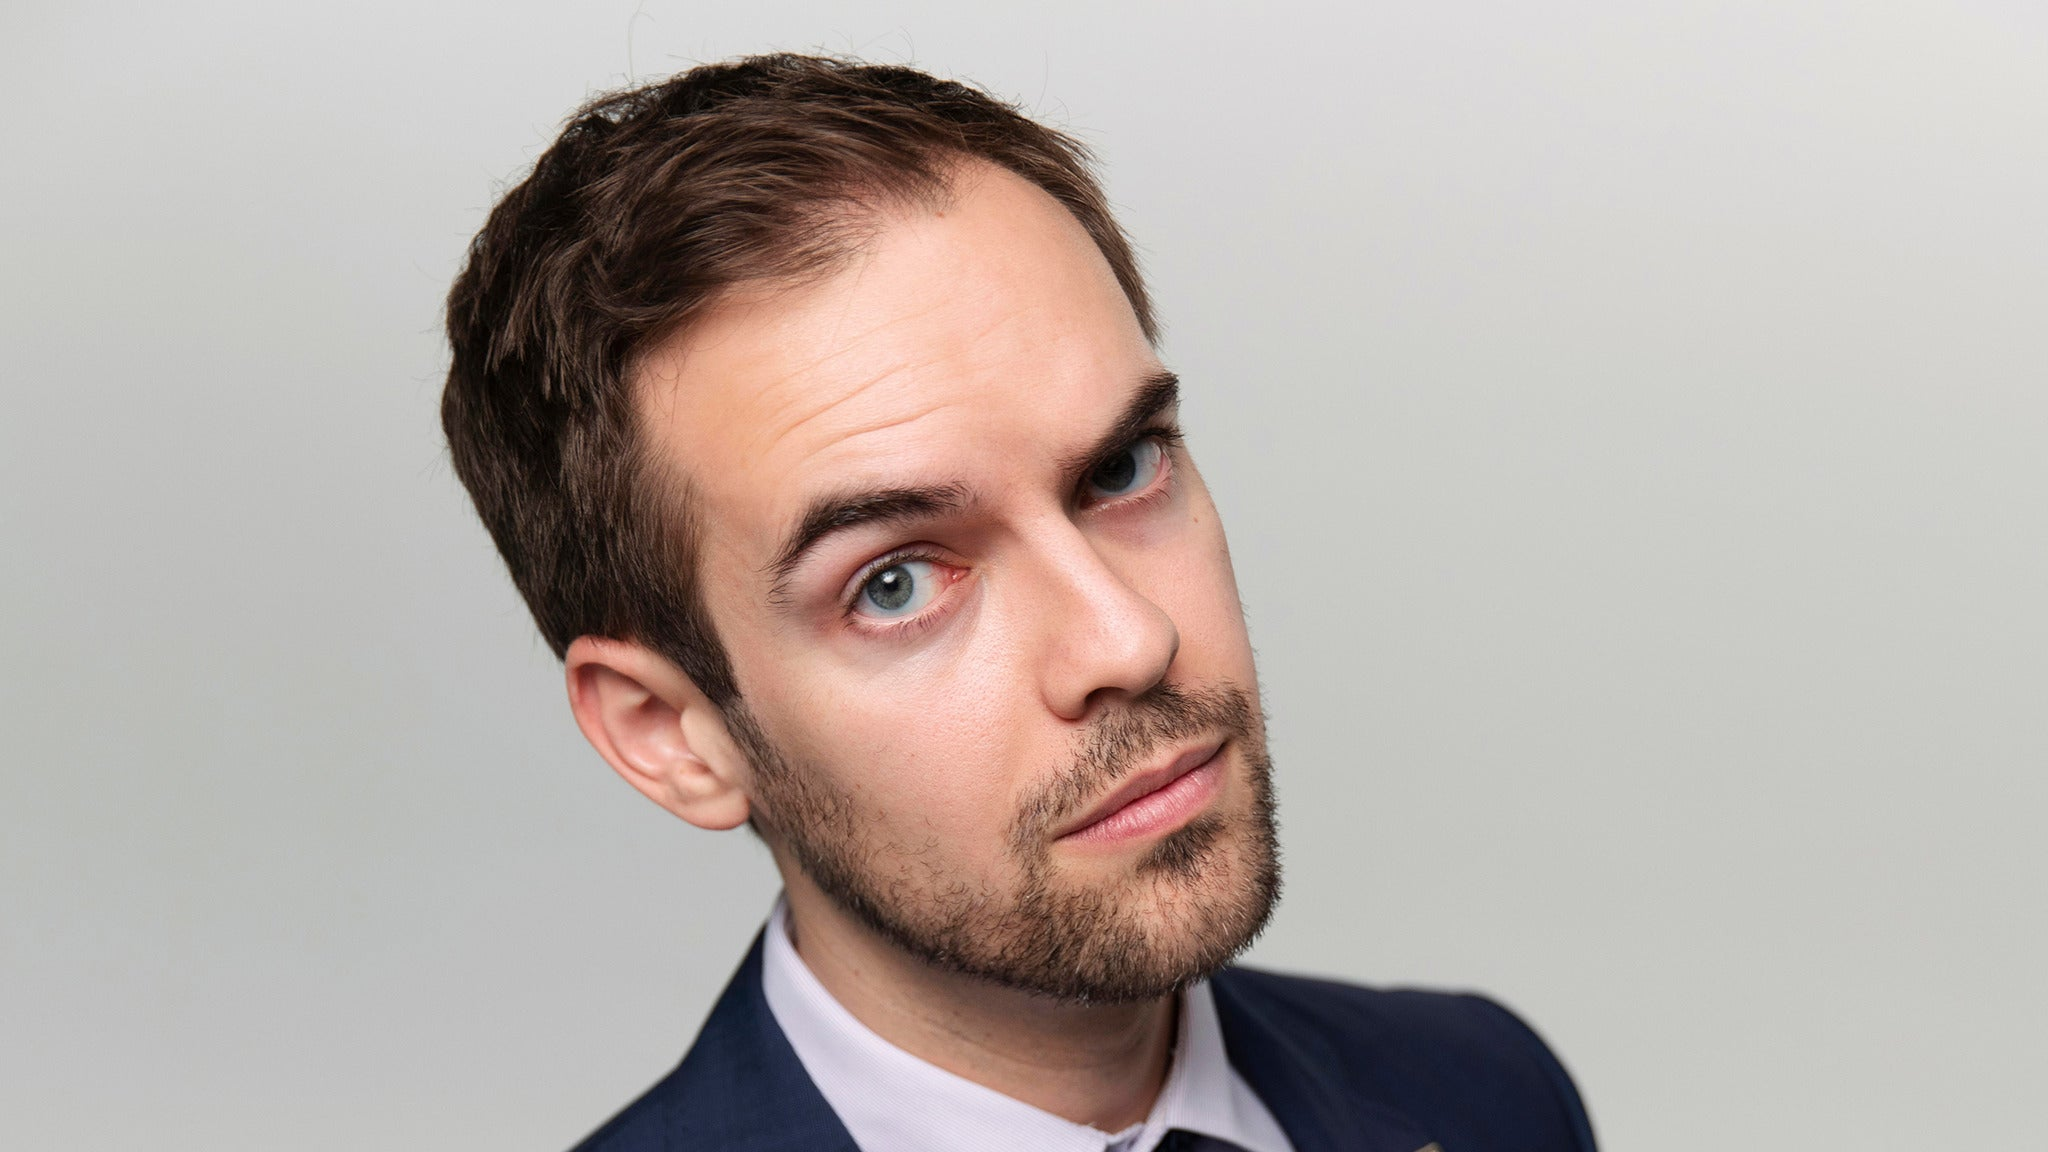 Jacksfilms Presents: YIAY LIVE! LIVE! at The Queen